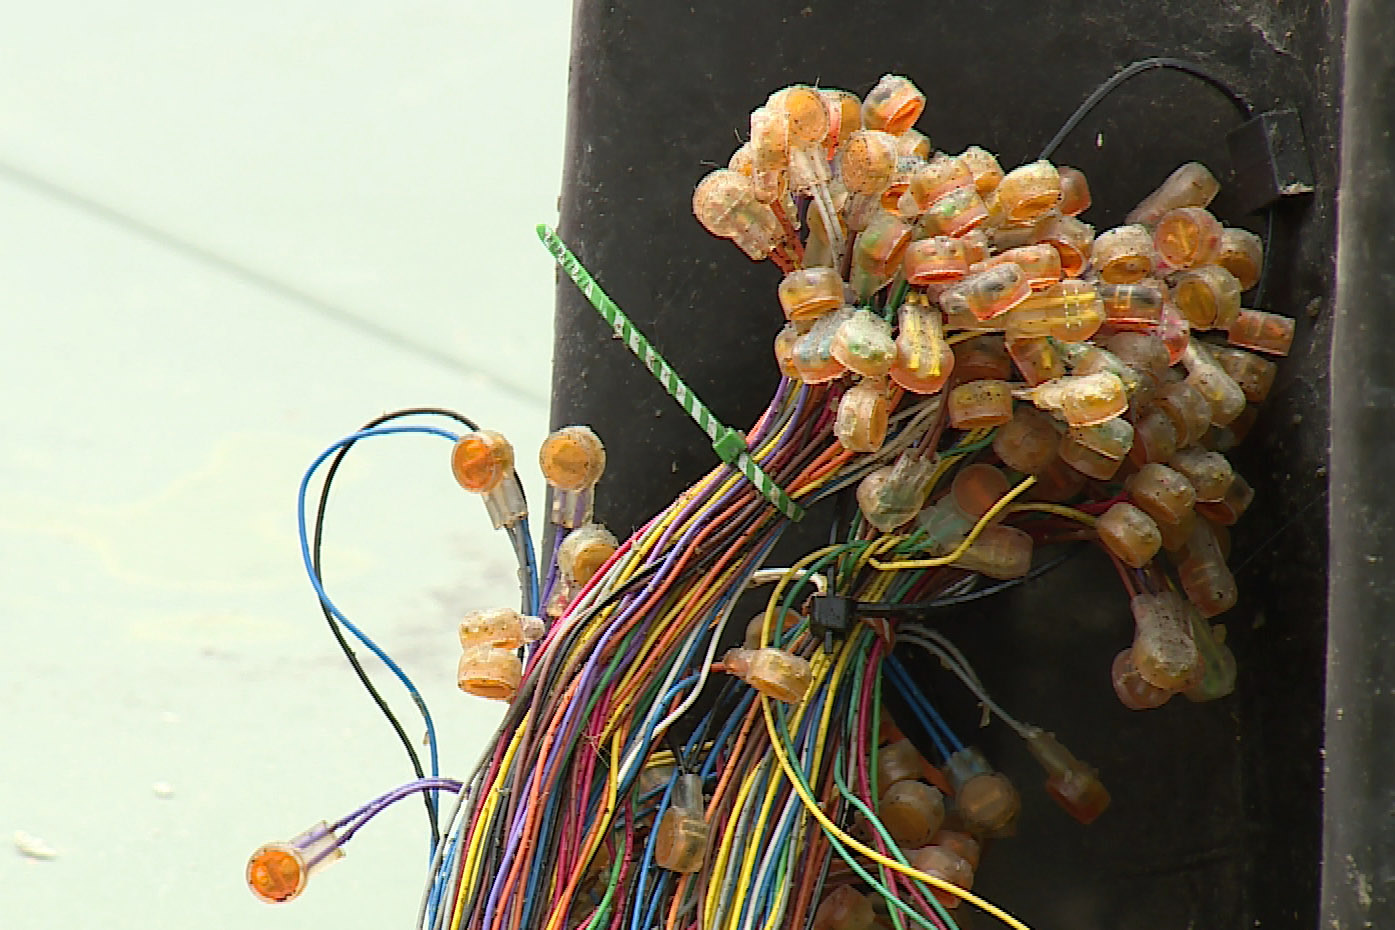 smithville-fiber-internet-cables-steve-burns.jpg